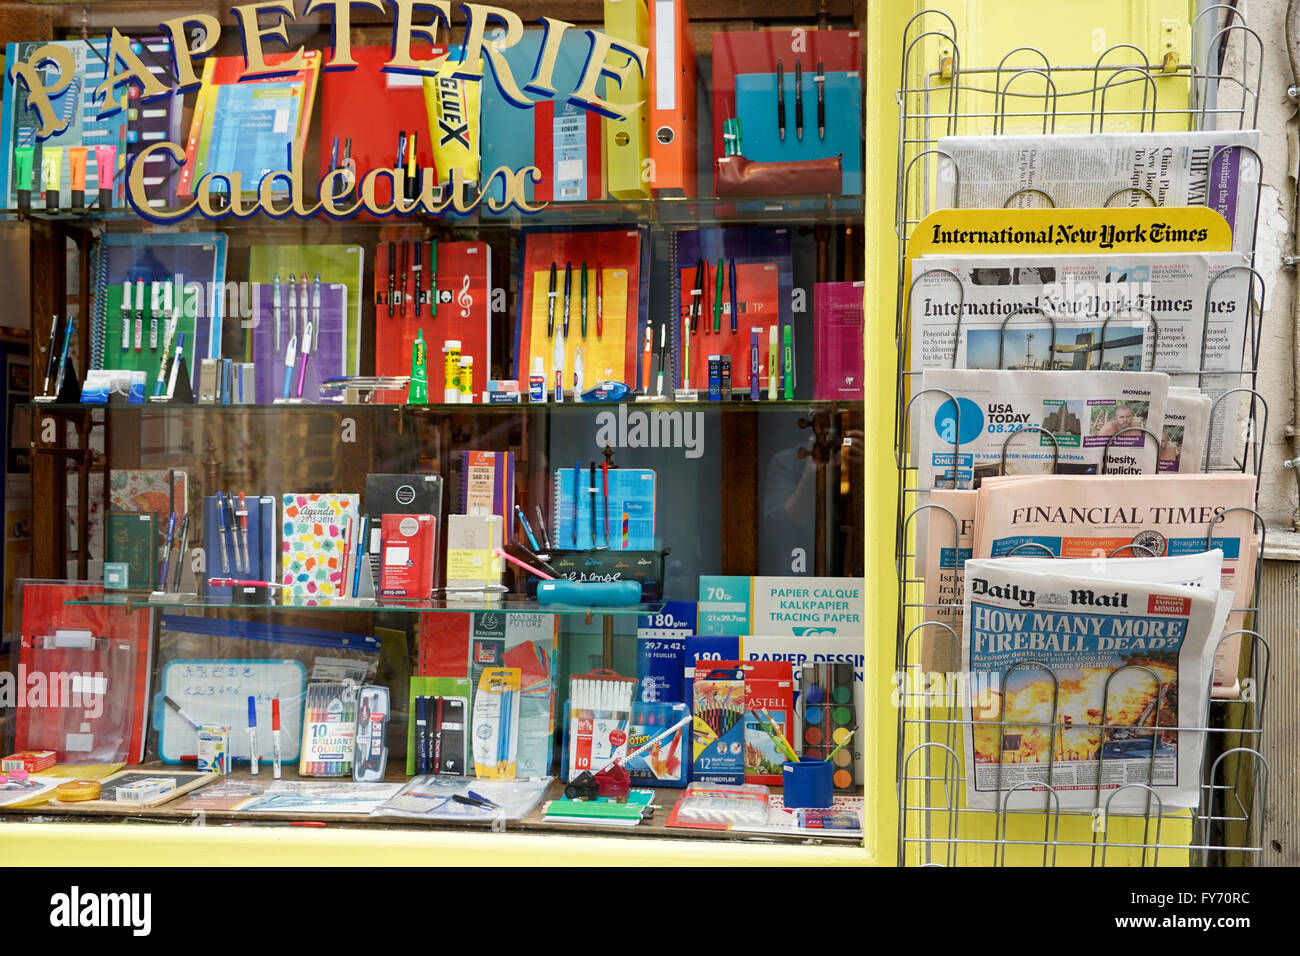 Ihram Kids For Sale Dubai: Window Of Stationery Store With Newspapers In Different